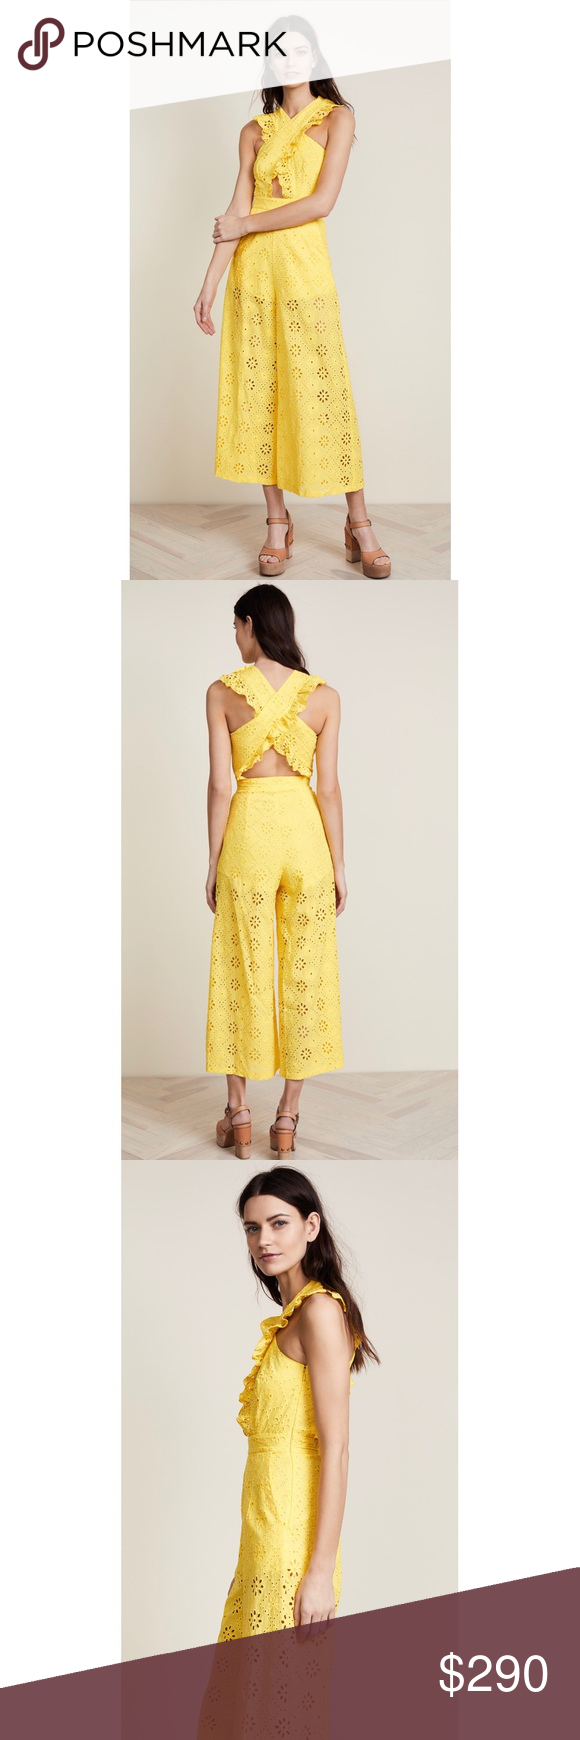 d34246286eb Alice McCall Limonada Jumpsuit Worn 1x for a couple hours at a baby shower.  Australian